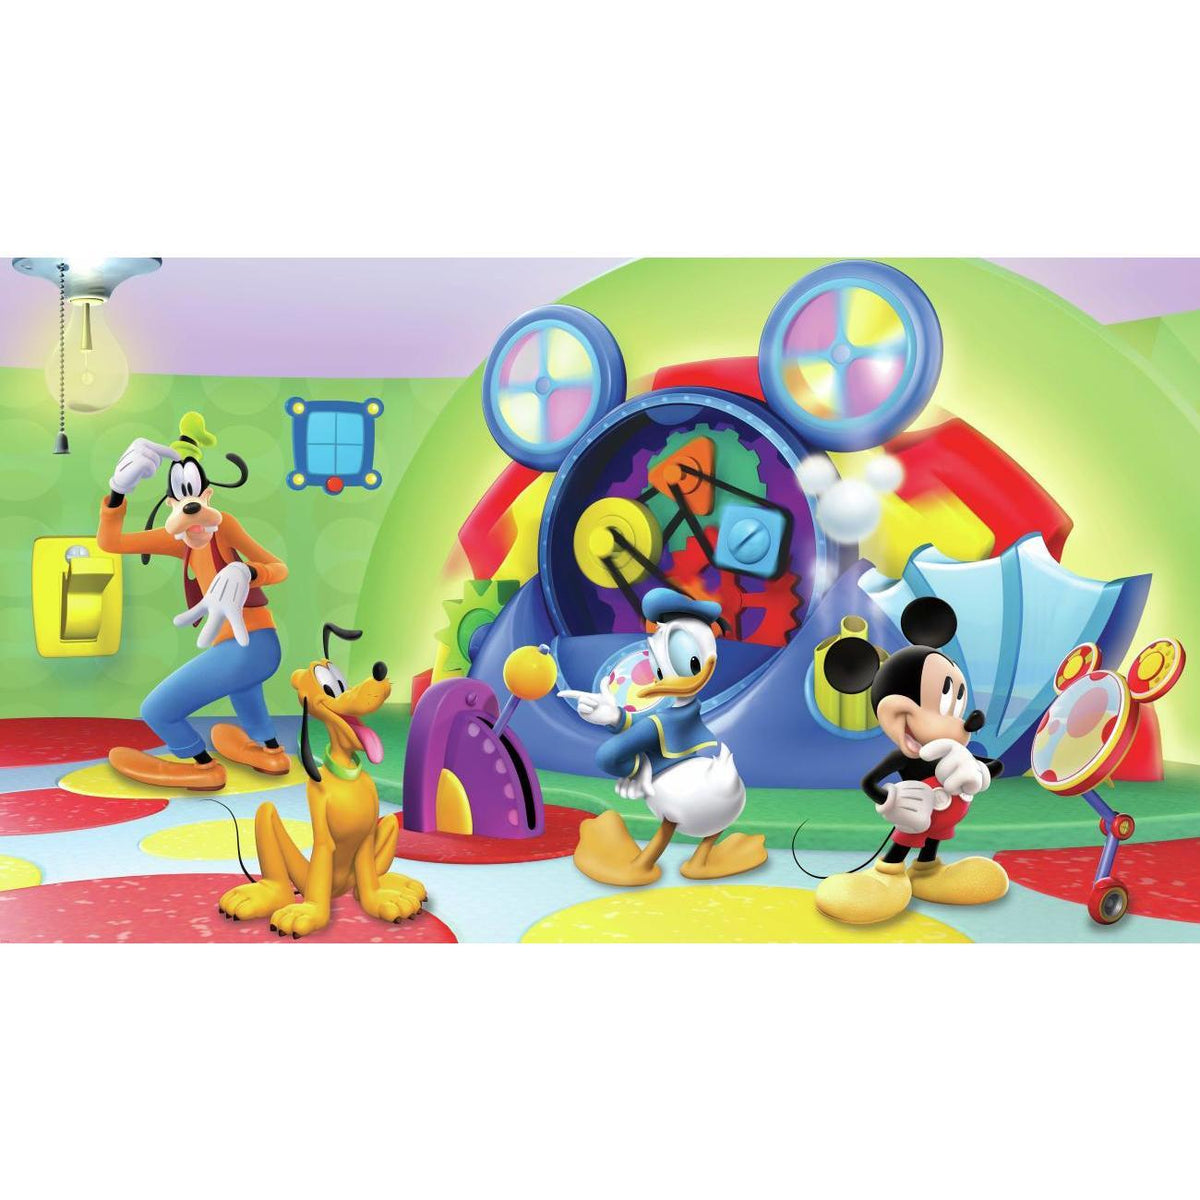 mickey mouse clubhouse capers xl wallpaper mural 10 5 x 6 roommates decor roommates decor